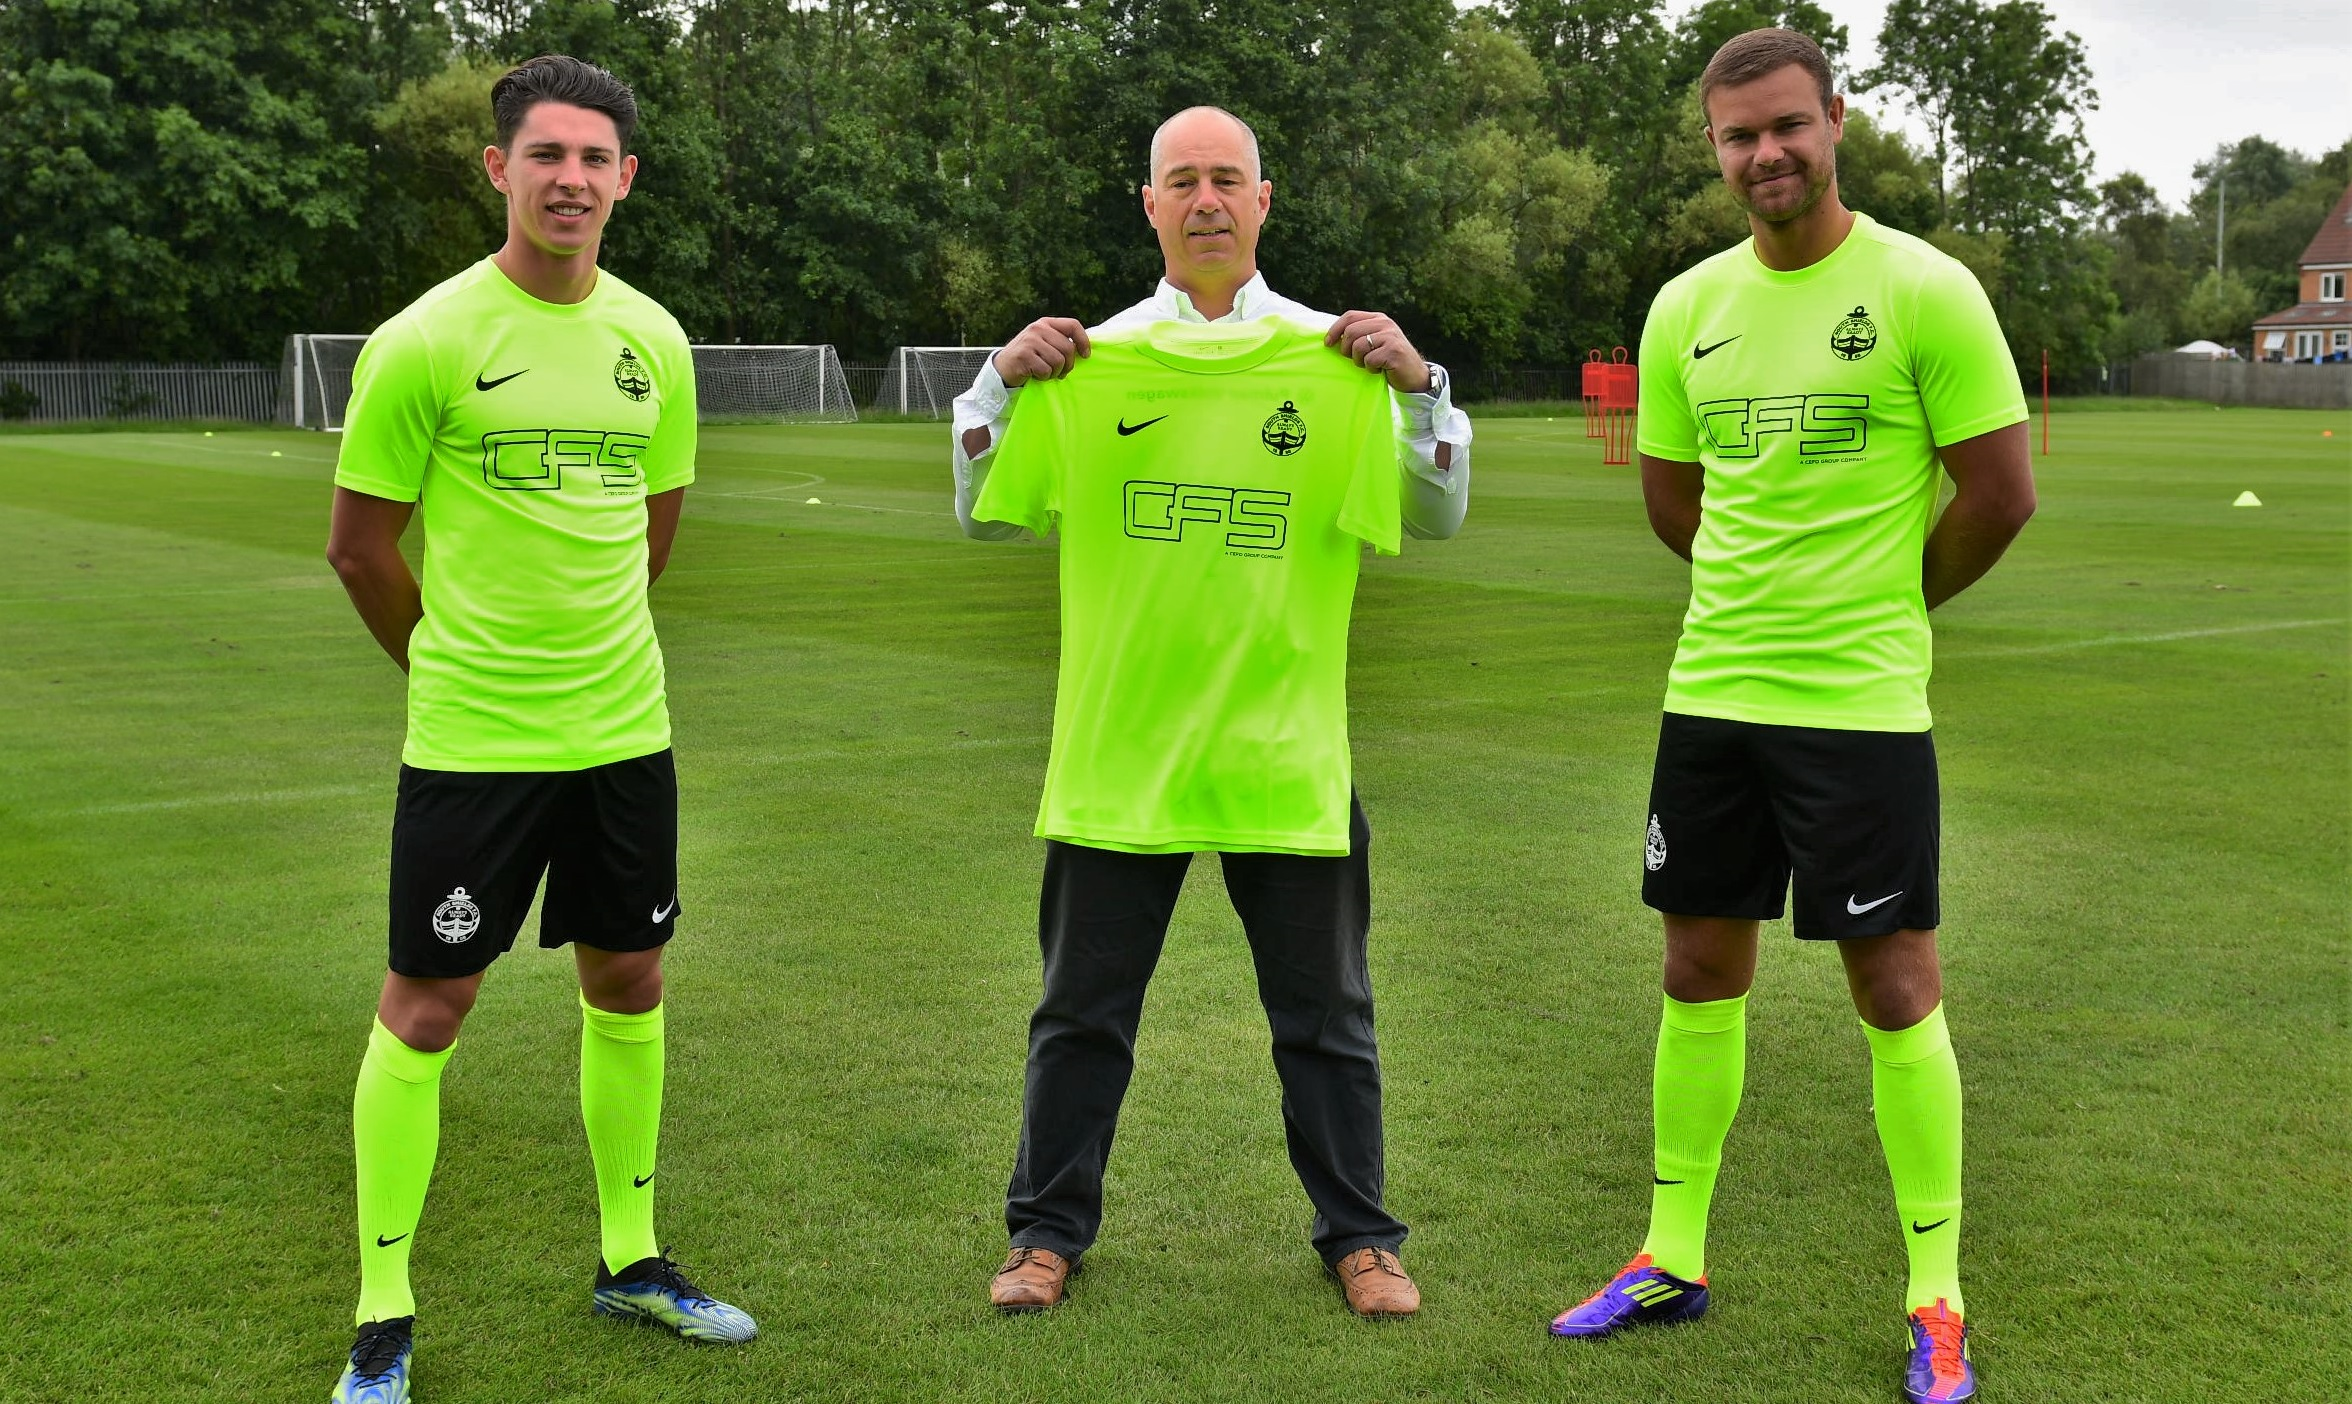 Introducing the South Shields FC 2021-22 away kit